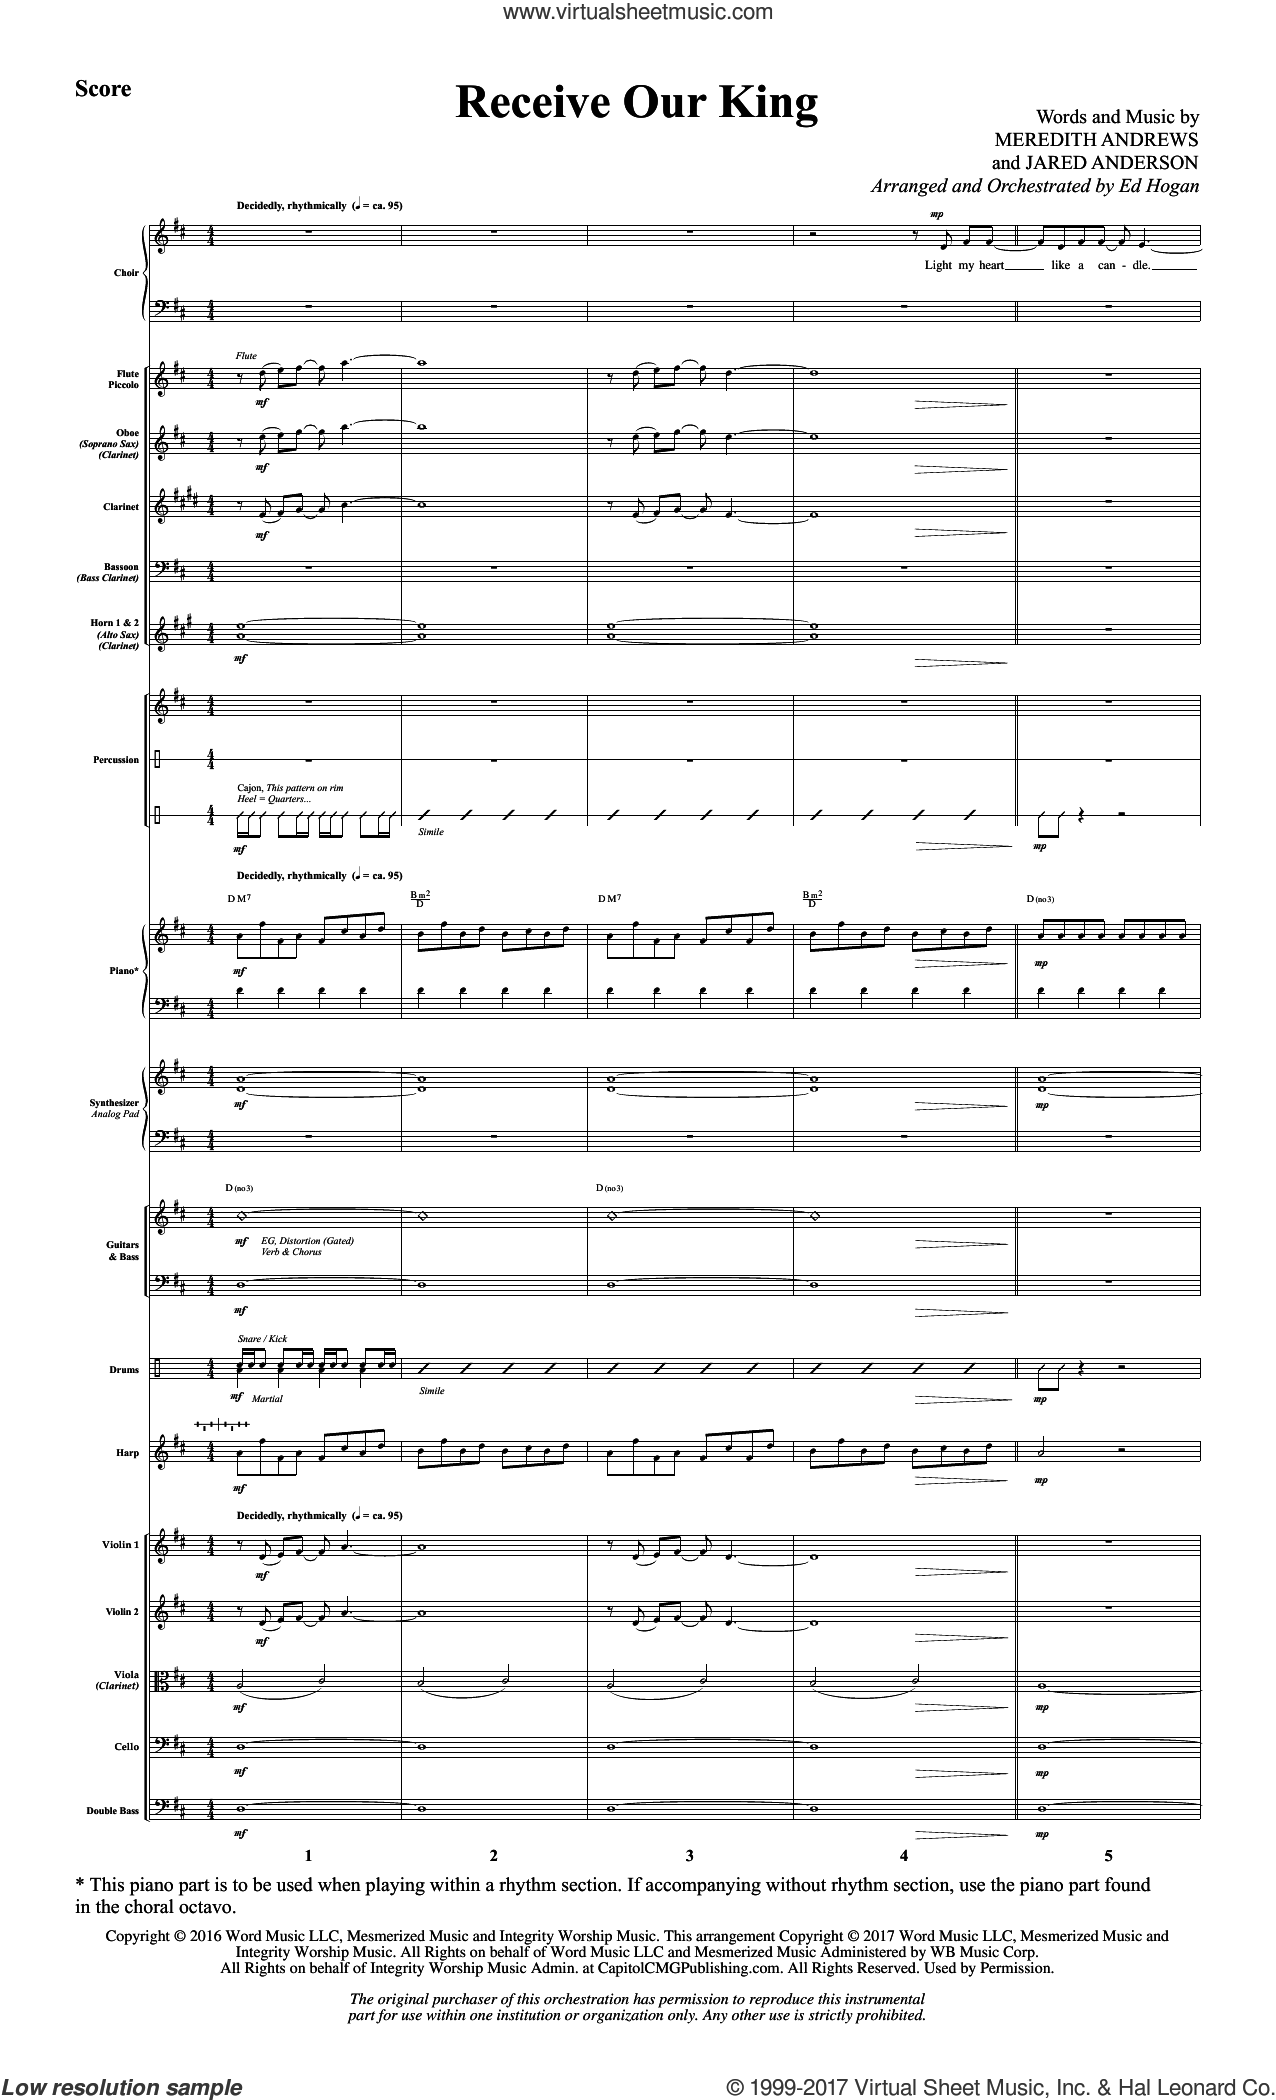 Receive Our King (COMPLETE) sheet music for orchestra/band by Ed Hogan, Jaren Anderson and Meredith Andrews, intermediate skill level